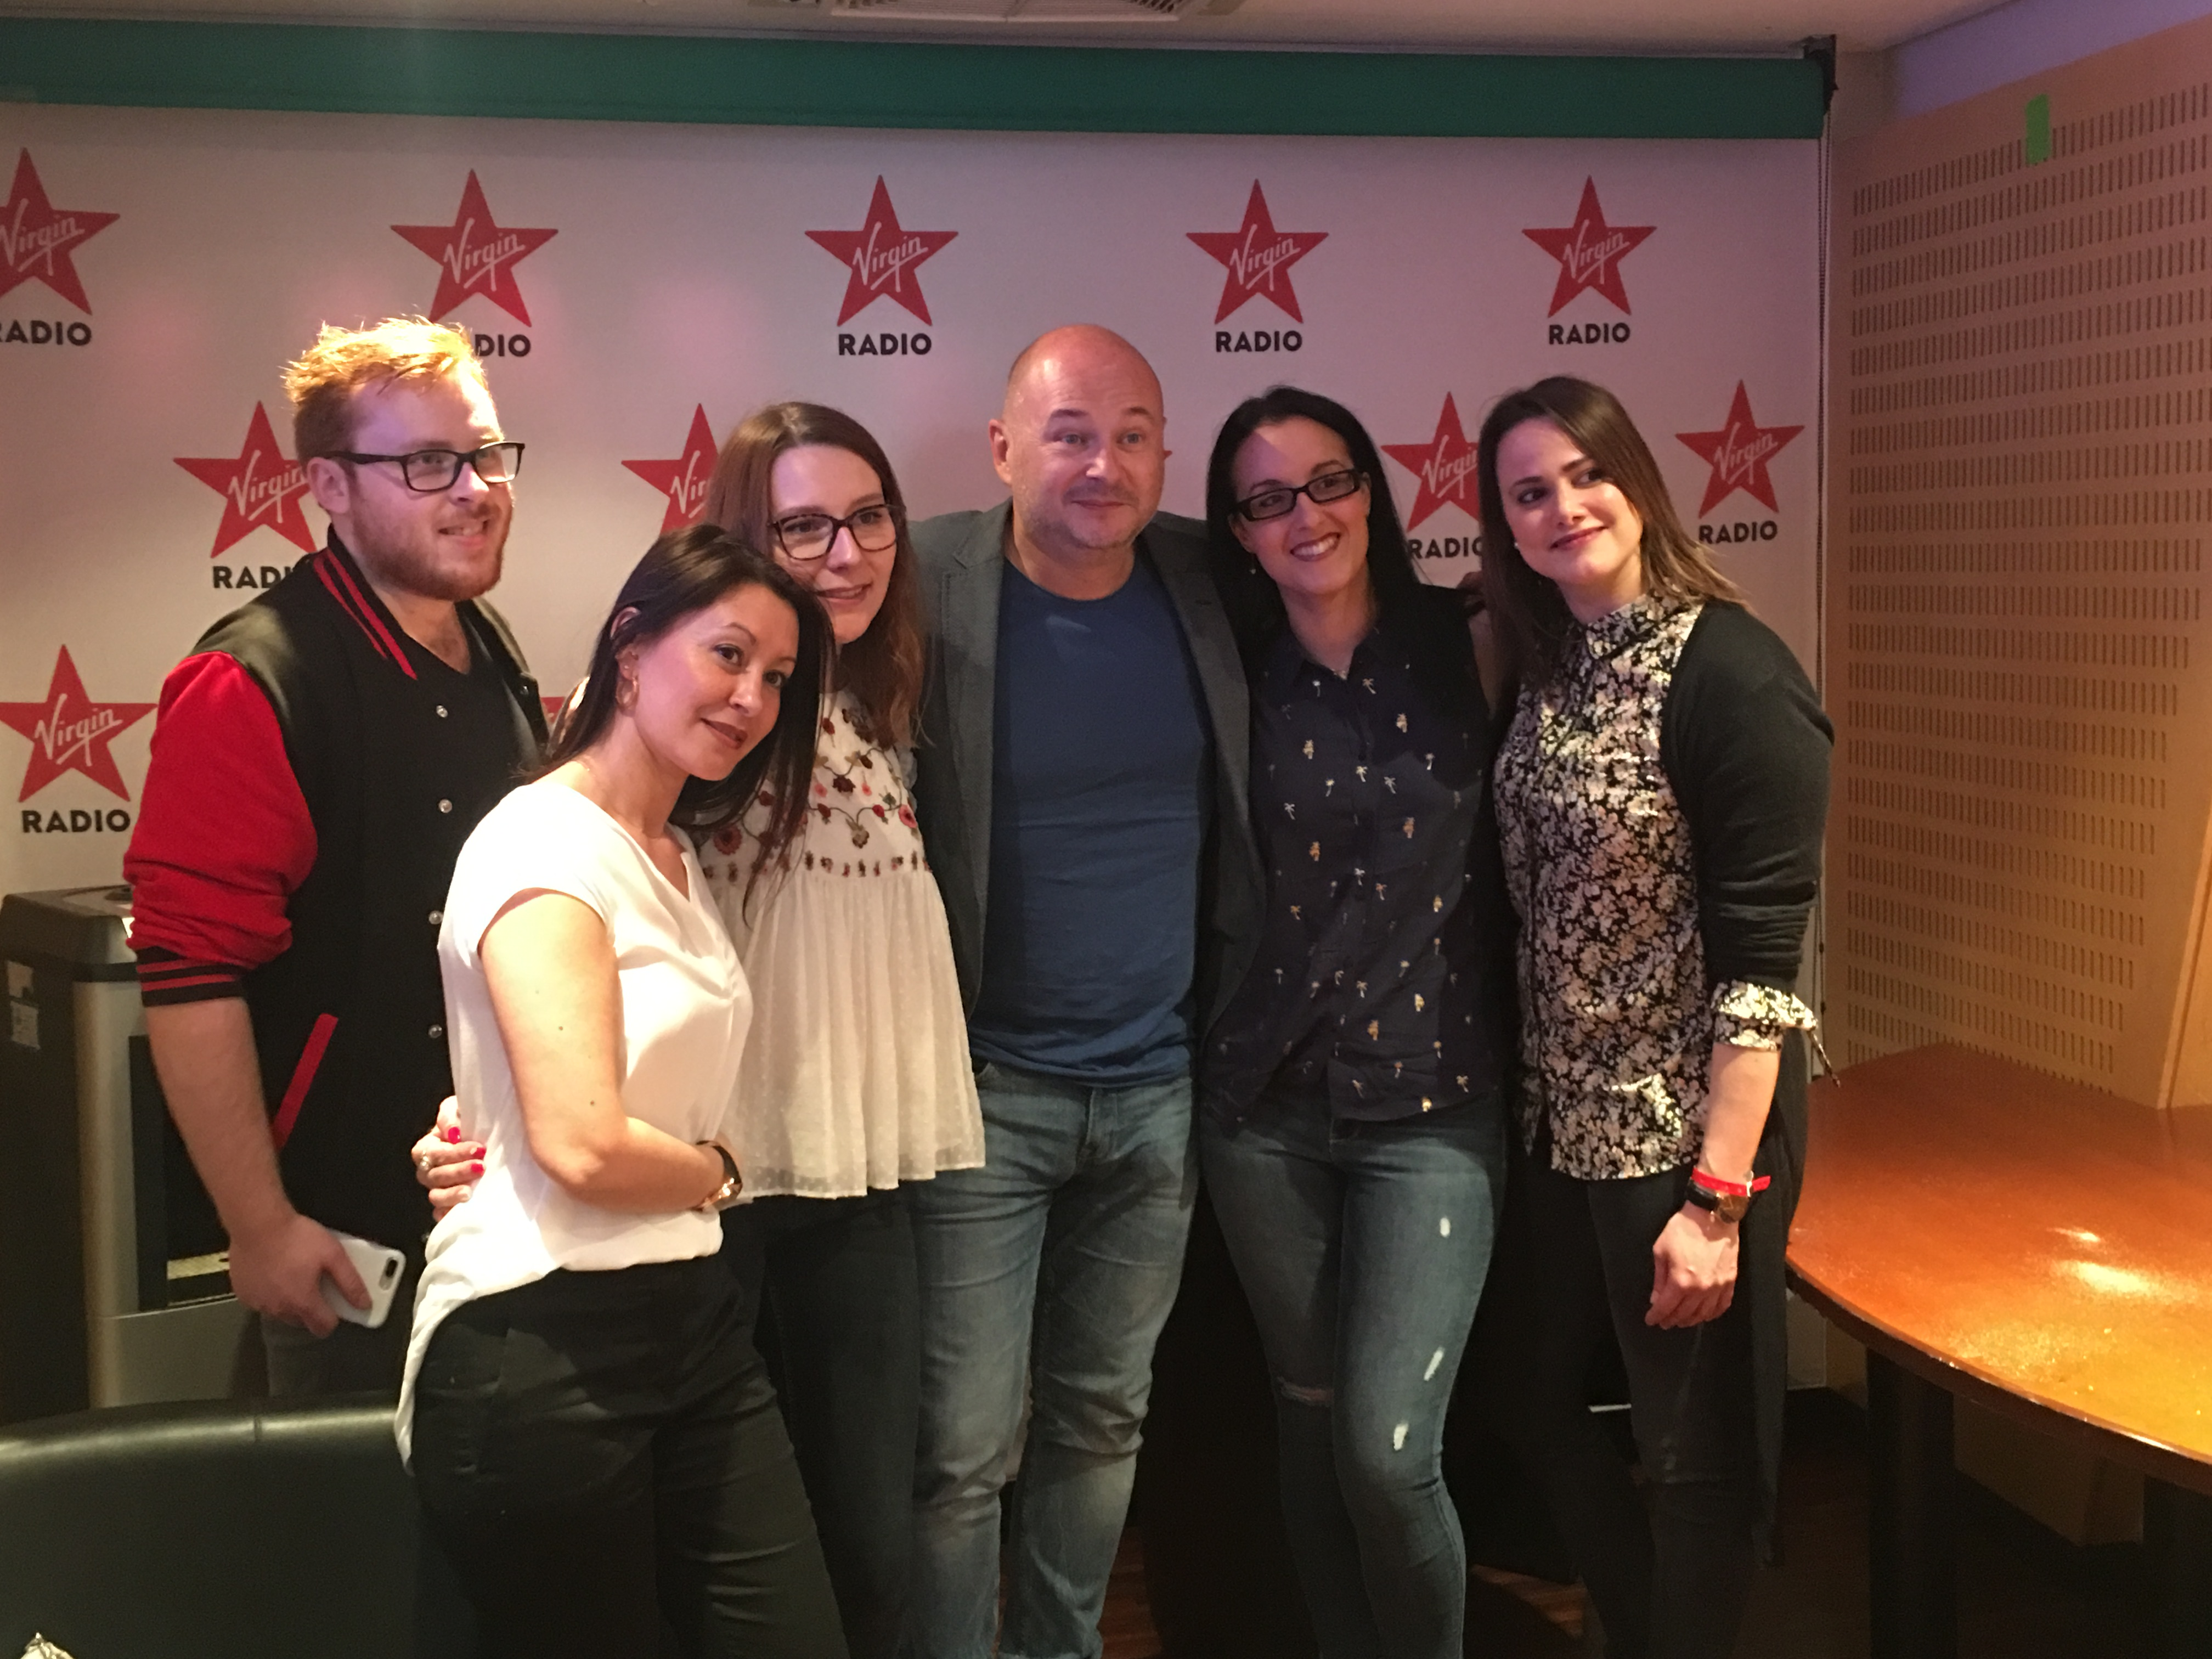 Emission CAUET S'LACHE sur Virgin Radio